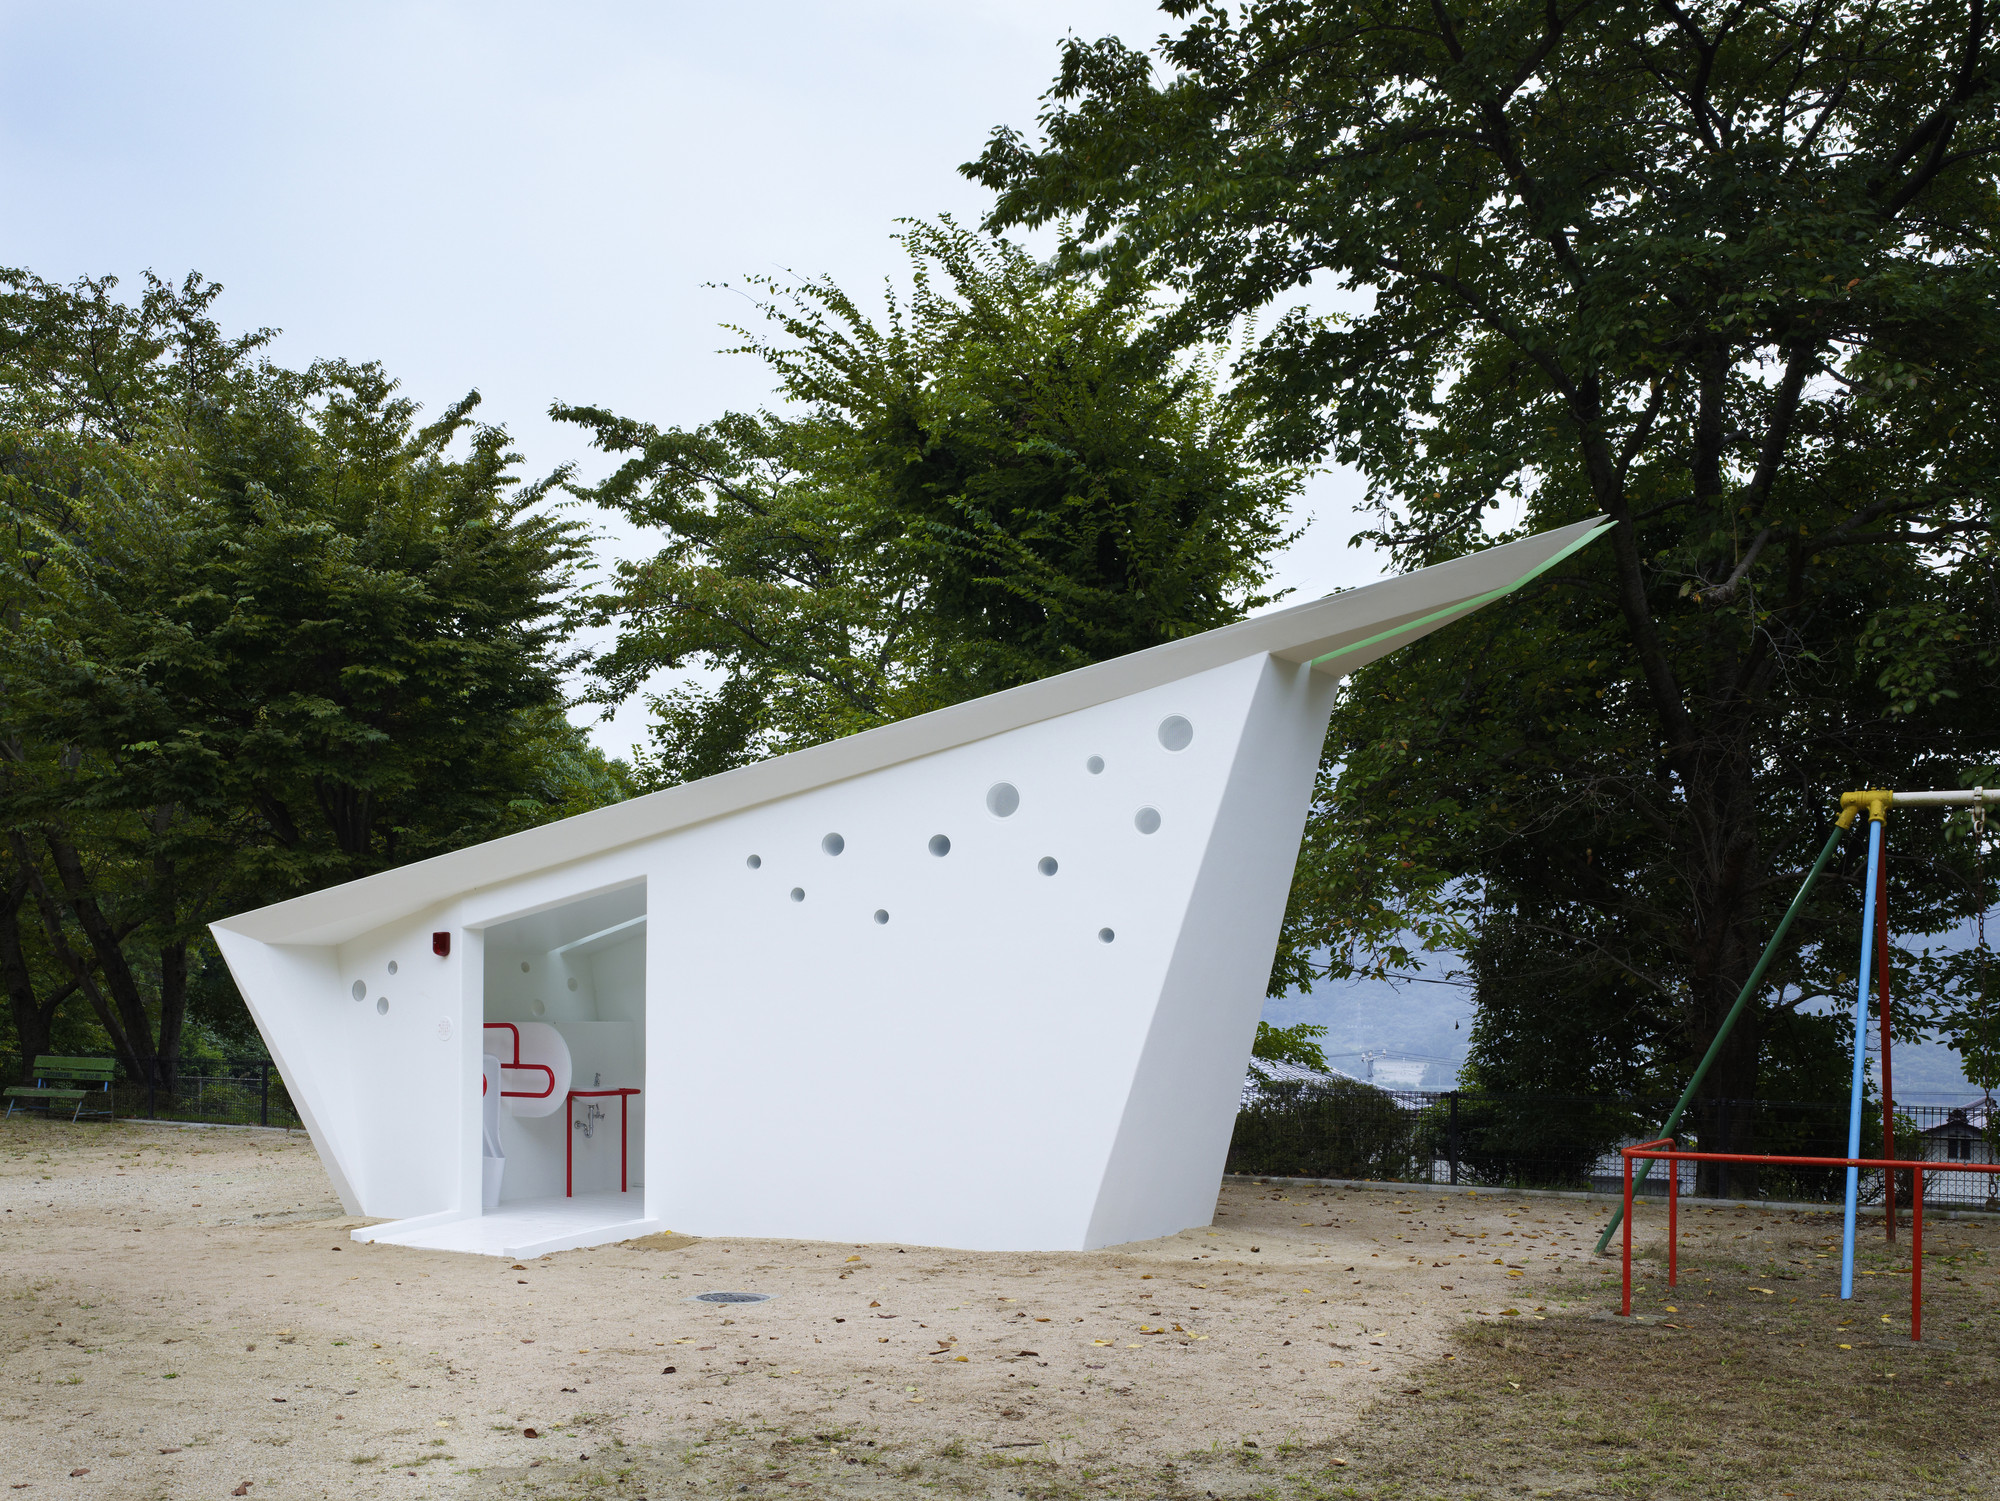 Hiroshima Park Restrooms: Absolute Arrows / Future Studio, © Toshiyuki Yano